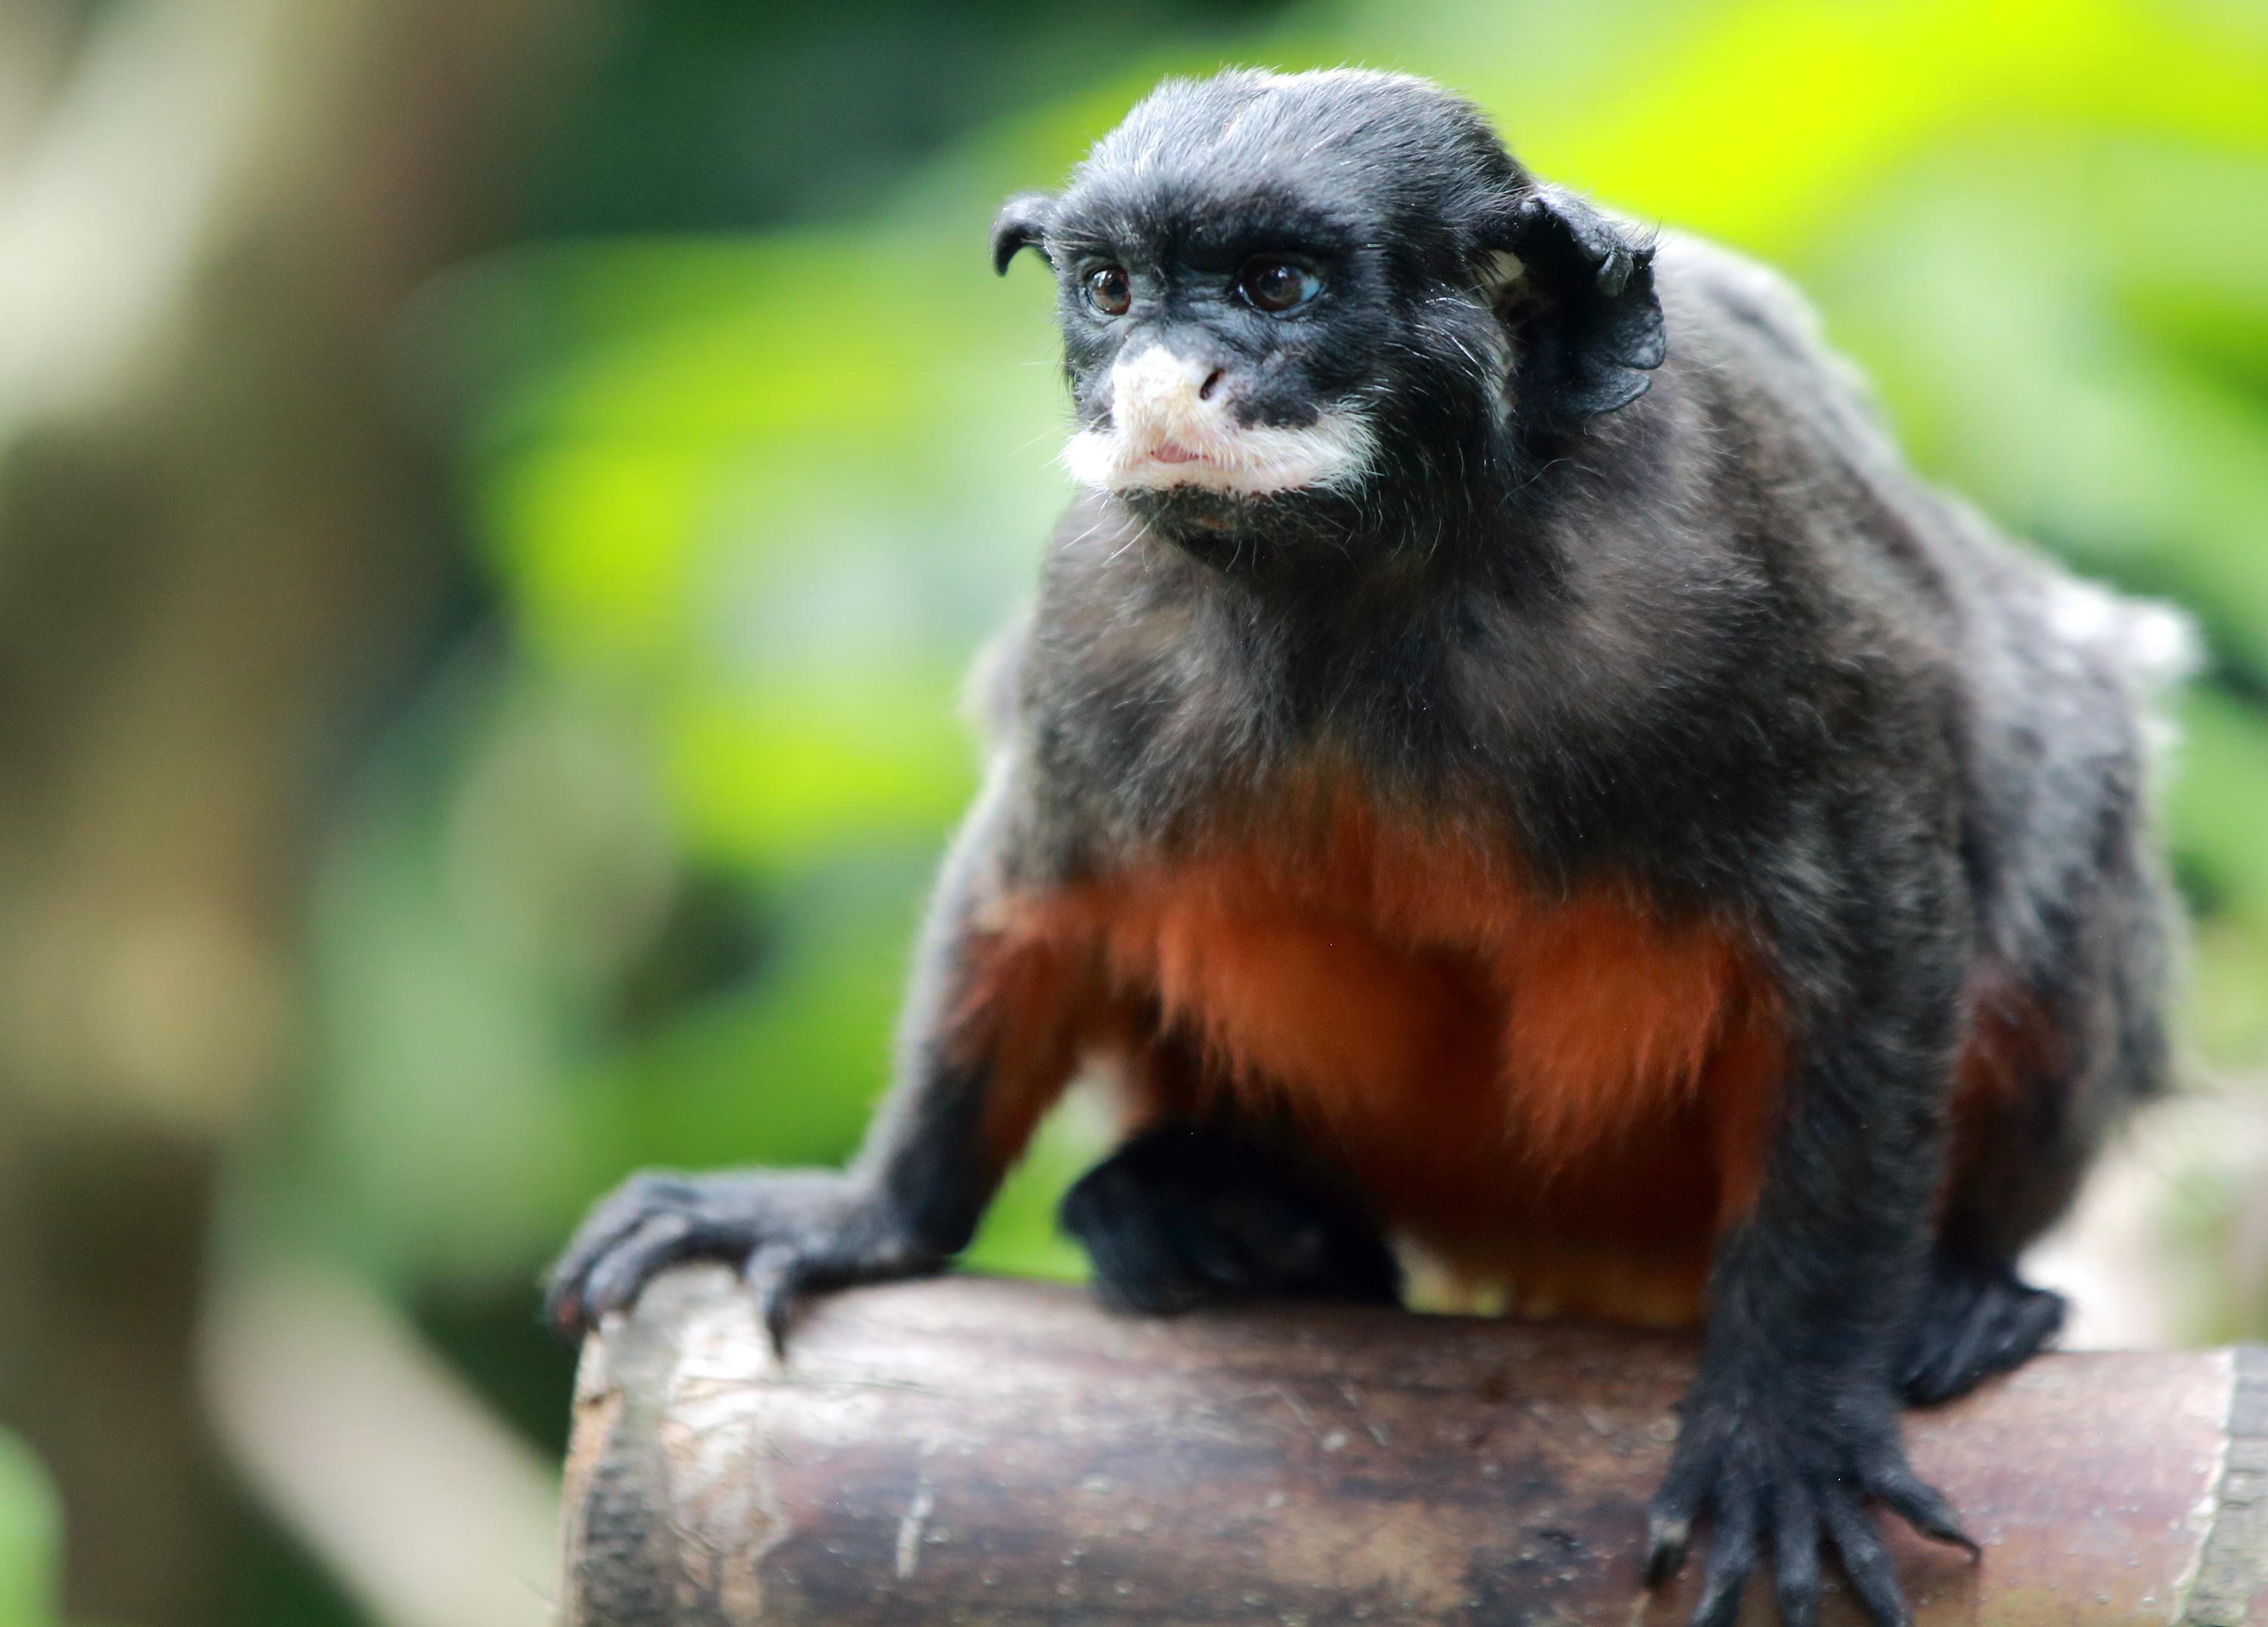 https://upload.wikimedia.org/wikipedia/commons/d/dd/Red-bellied_tamarin_%28Saguinus_labiatus%29_2.jpg